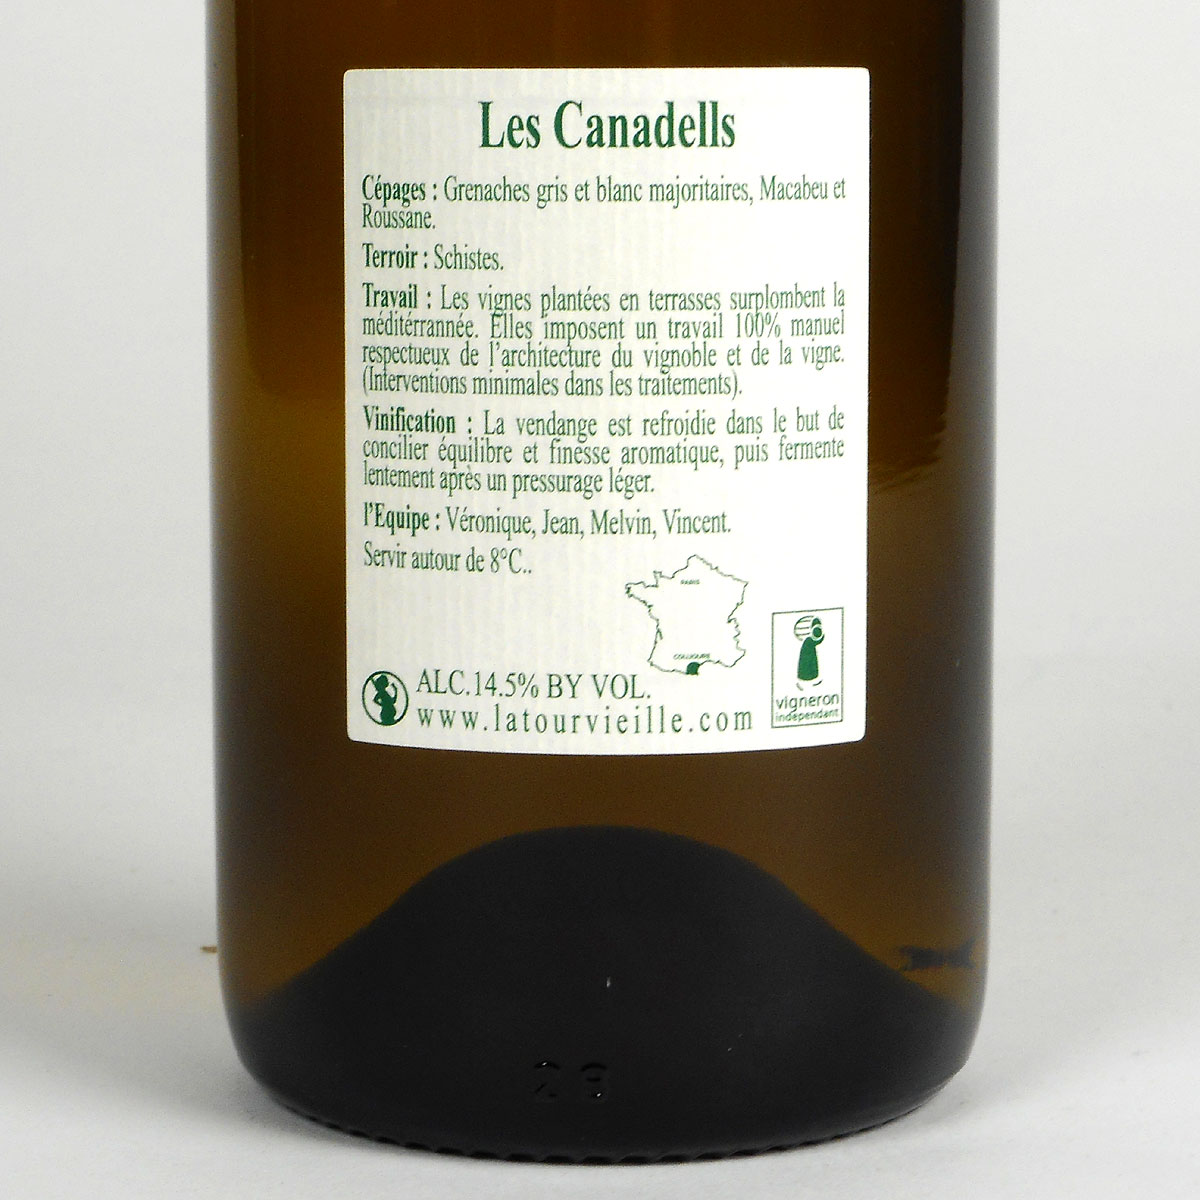 Collioure: Domaine La Tour Vieille 'Les Canadells' 2019 - Bottle Rear Label